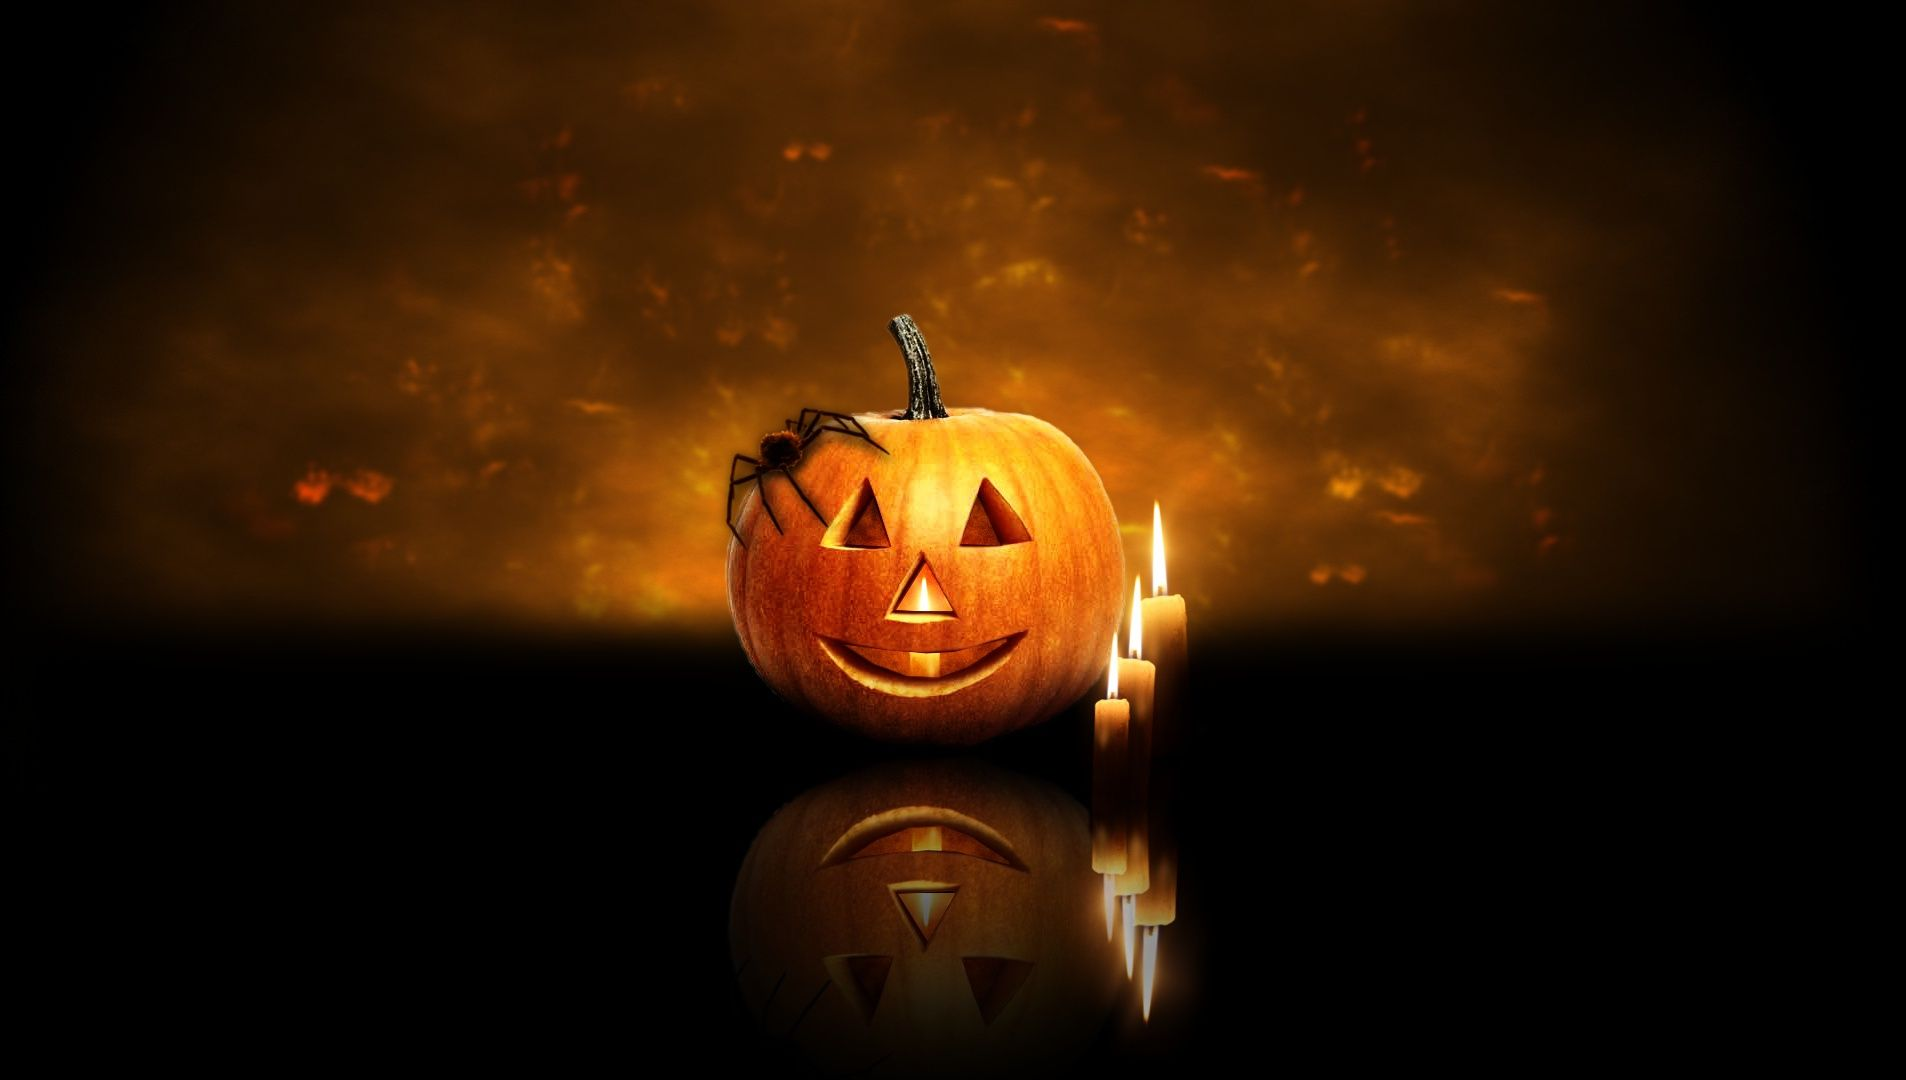 Download 50 Cute And Happy Halloween Wallpapers Hd For Free Pumpkin Wallpaper Happy Halloween Pictures Halloween Candles